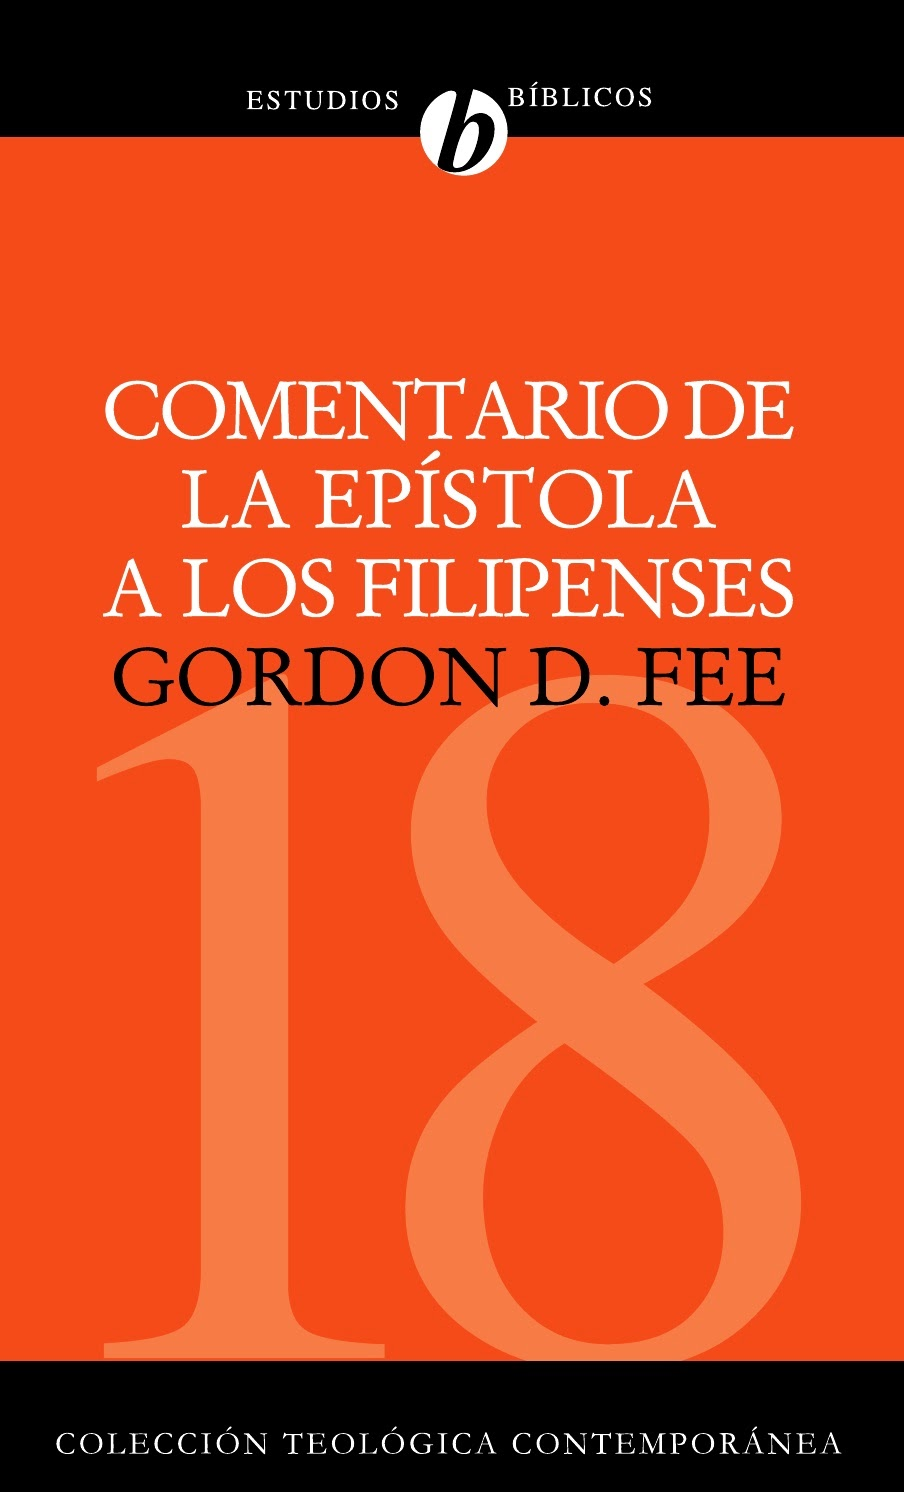 Gordon D. Fee-Comentario De La Epístola a Los Filipenses-